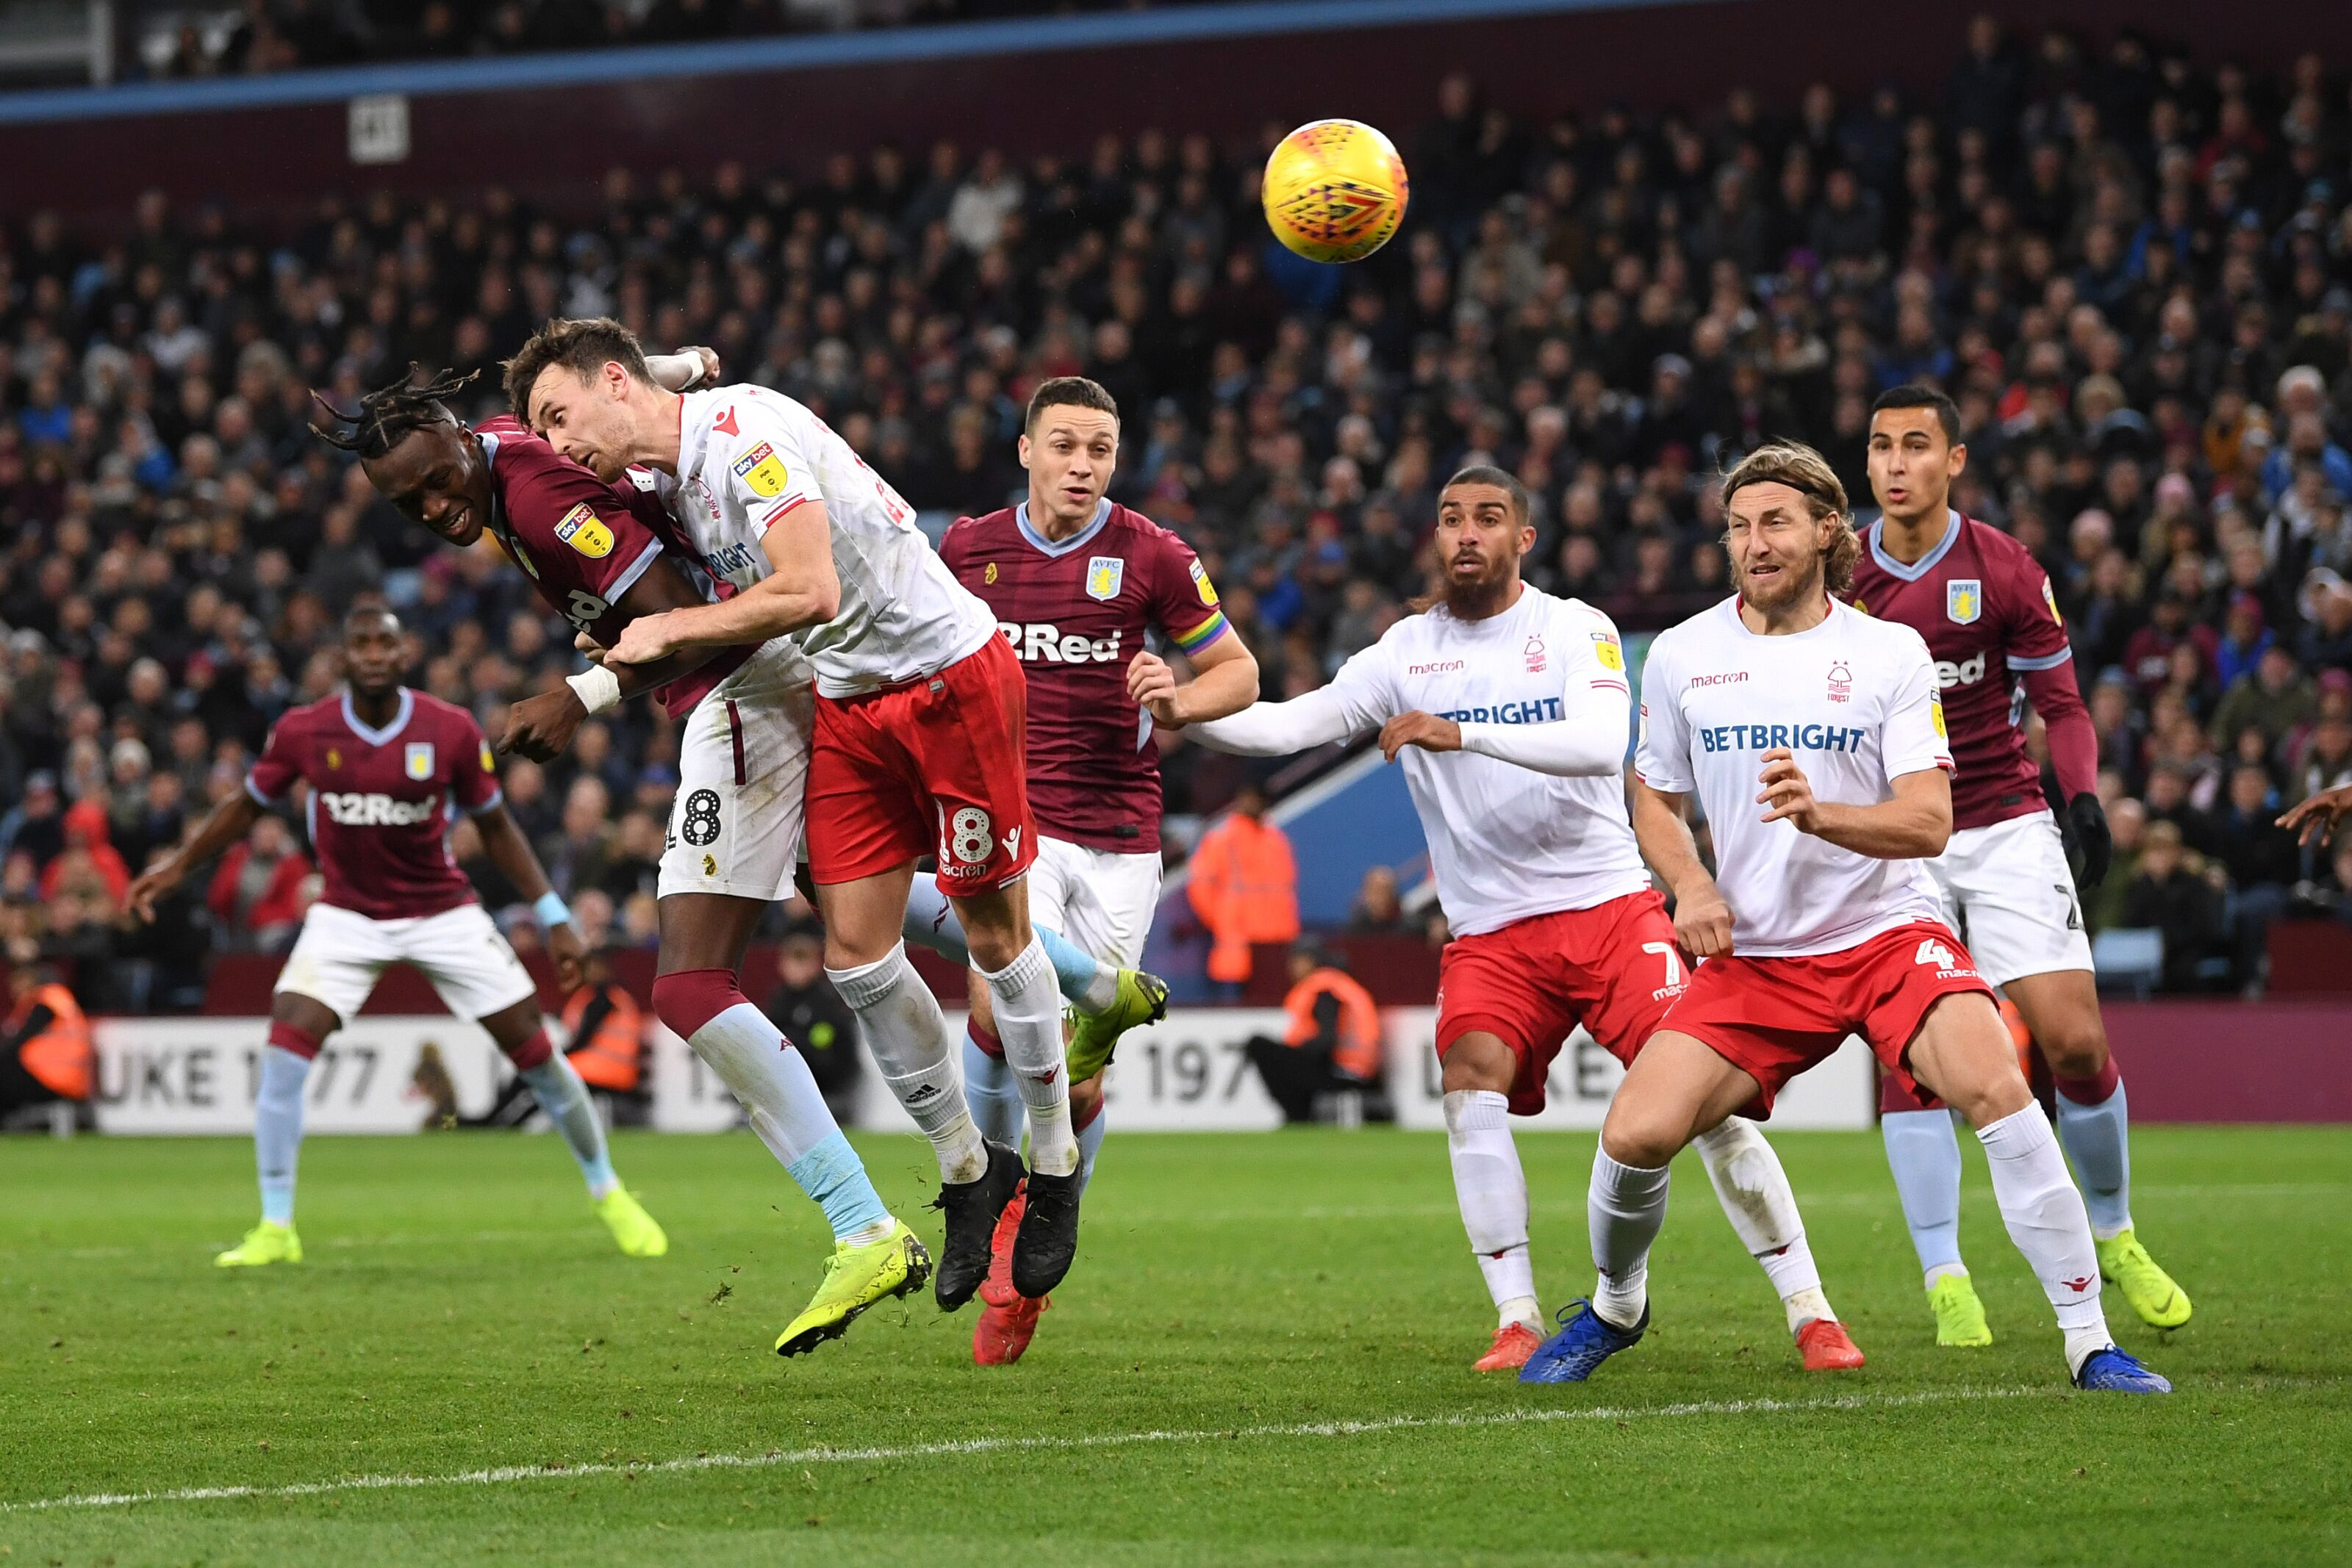 Middle of the EFL Championship table incredibly tight as clubs jostle for position